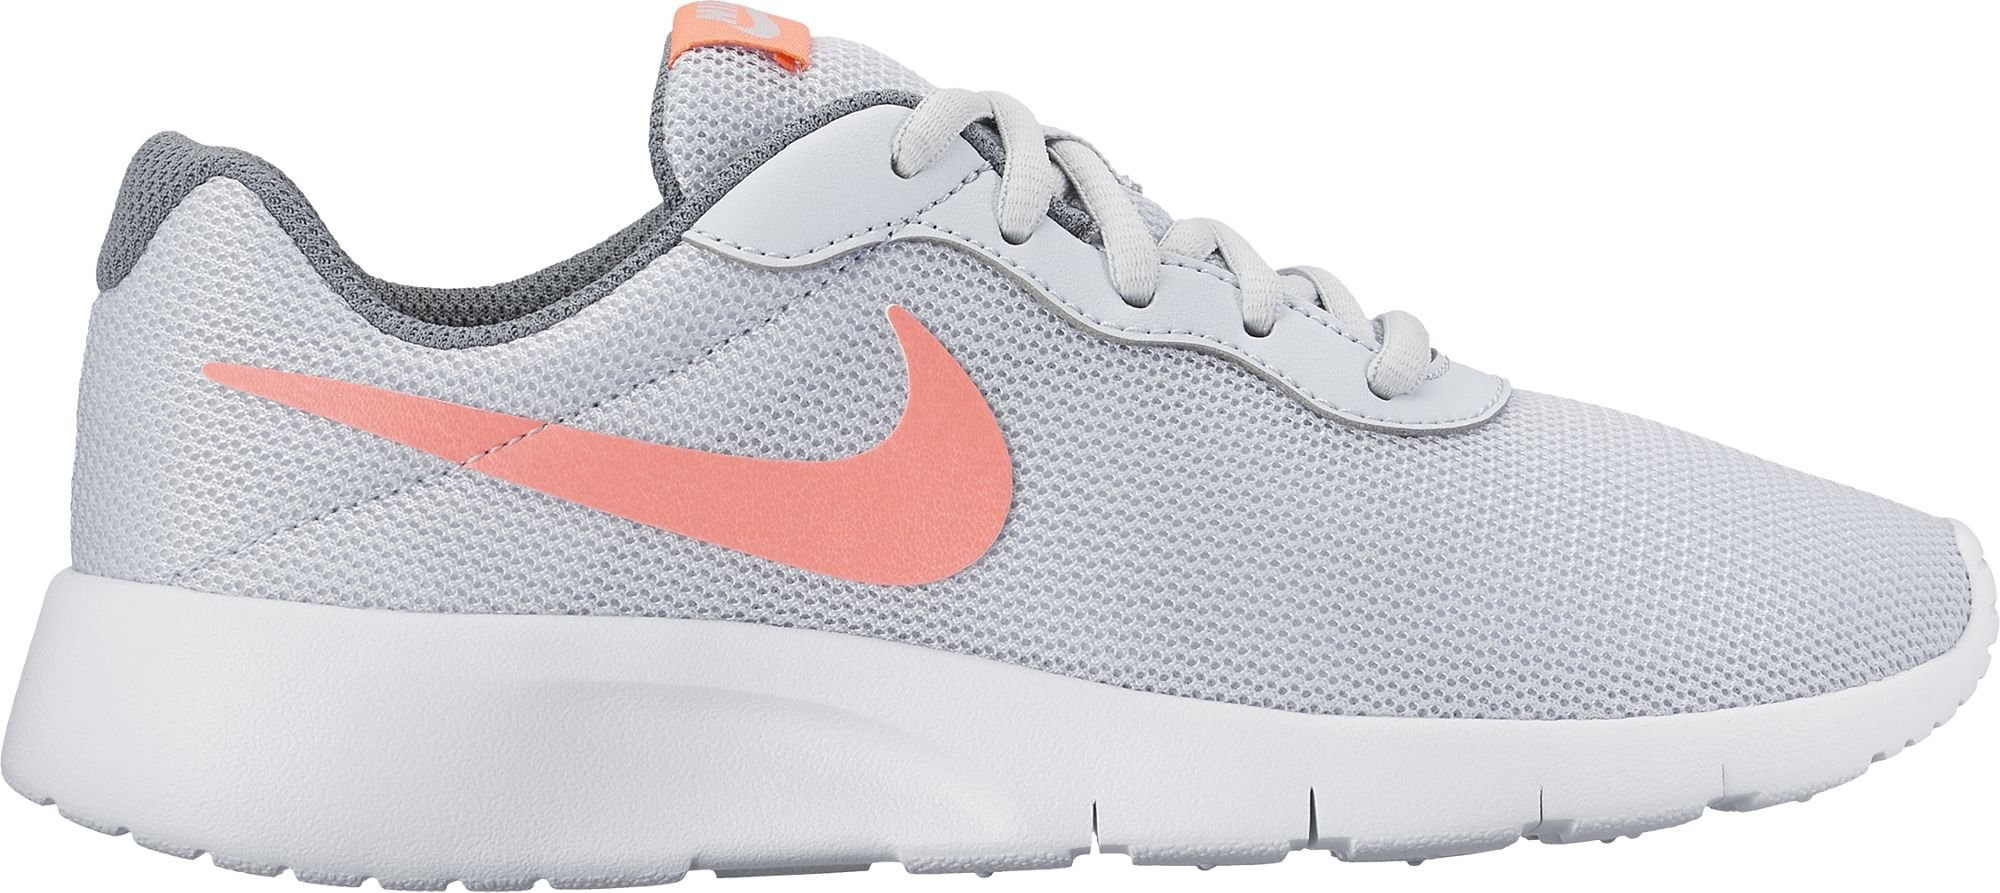 the best attitude 8feba ed0a2 Galleon - NIKE Kids Tanjun (GS) Platinum Lava Grey White Size 4.5